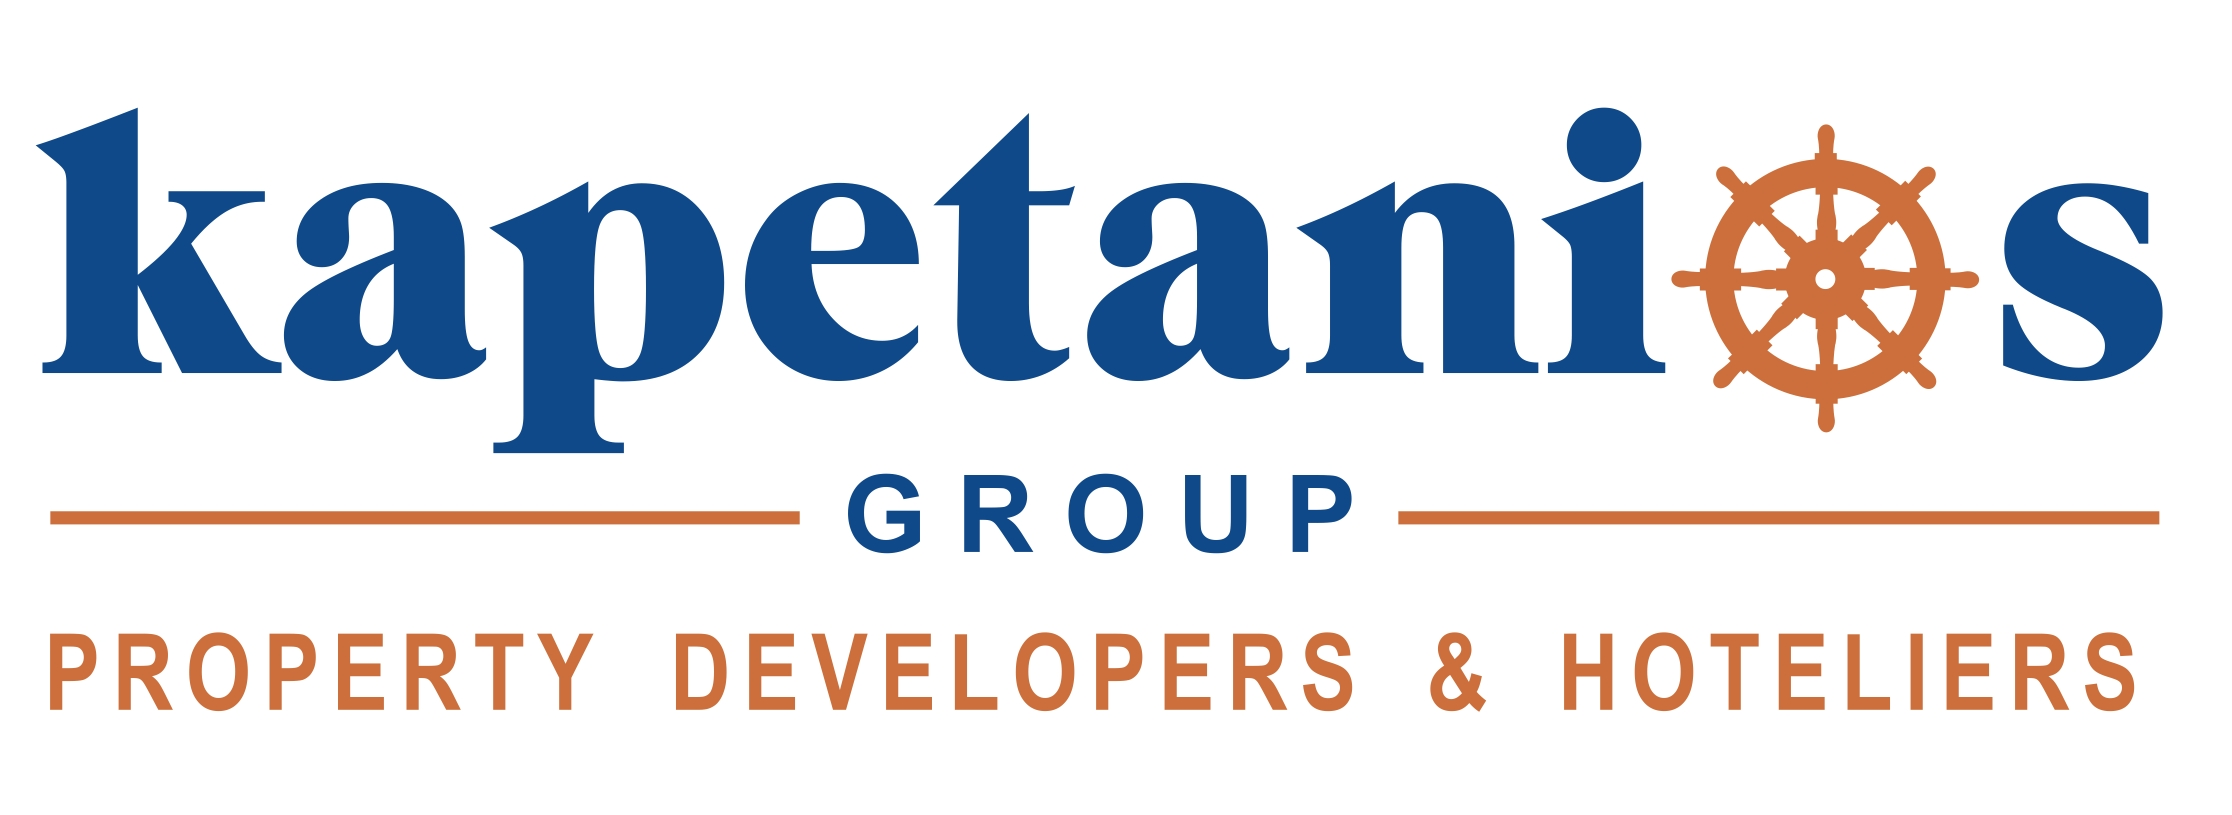 Kapetanios Group | Property Developers & Hoteliers